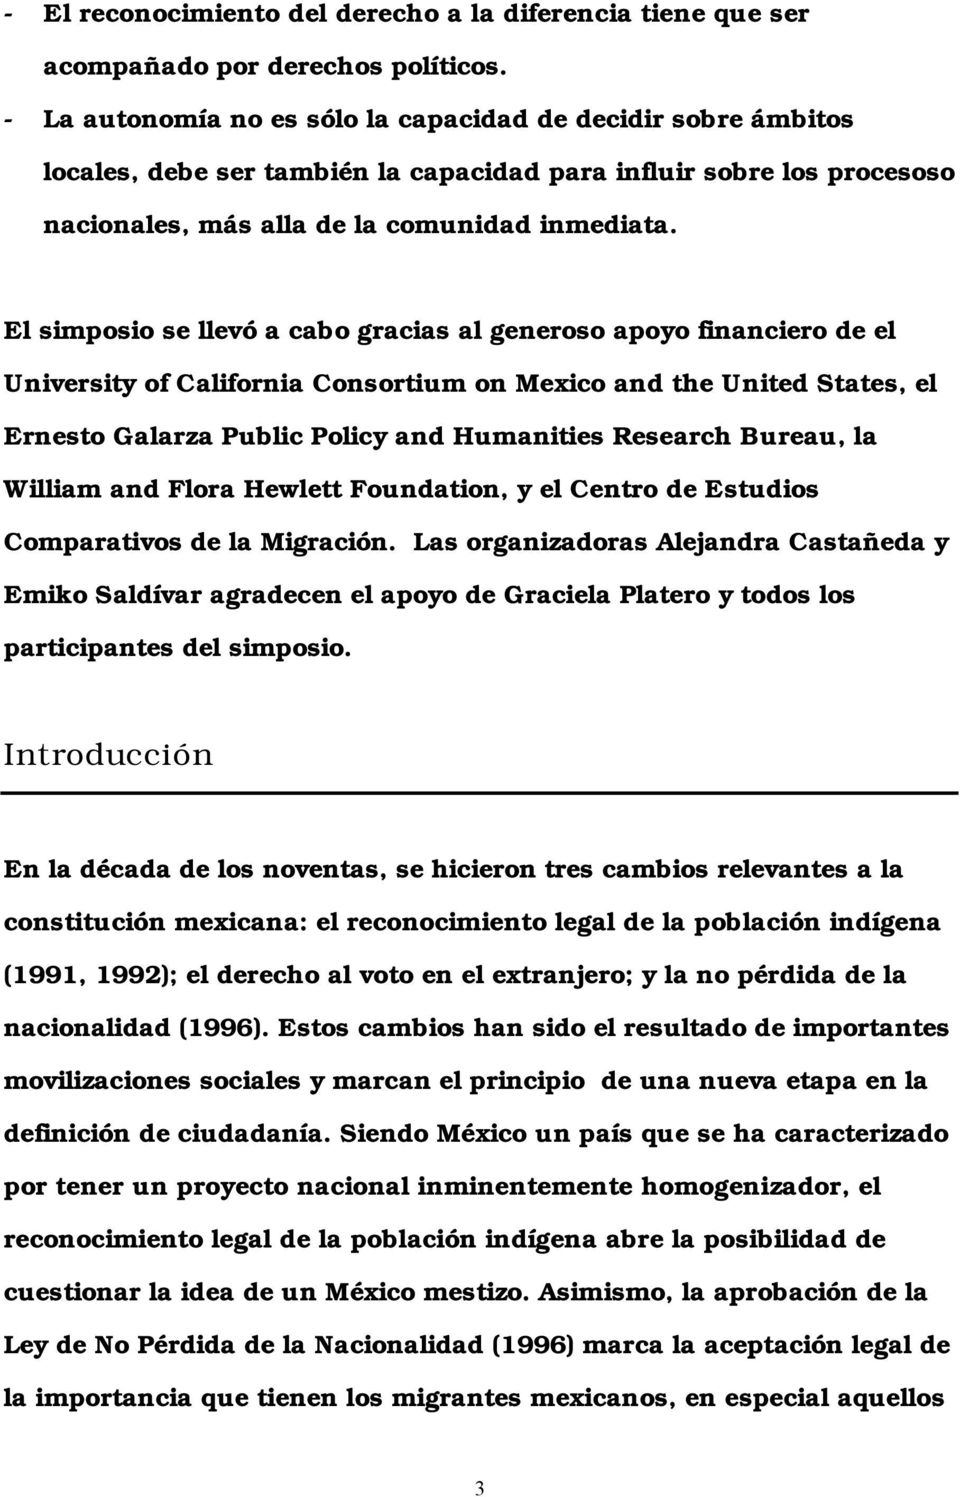 El simposio se llevó a cabo gracias al generoso apoyo financiero de el University of California Consortium on Mexico and the United States, el Ernesto Galarza Public Policy and Humanities Research